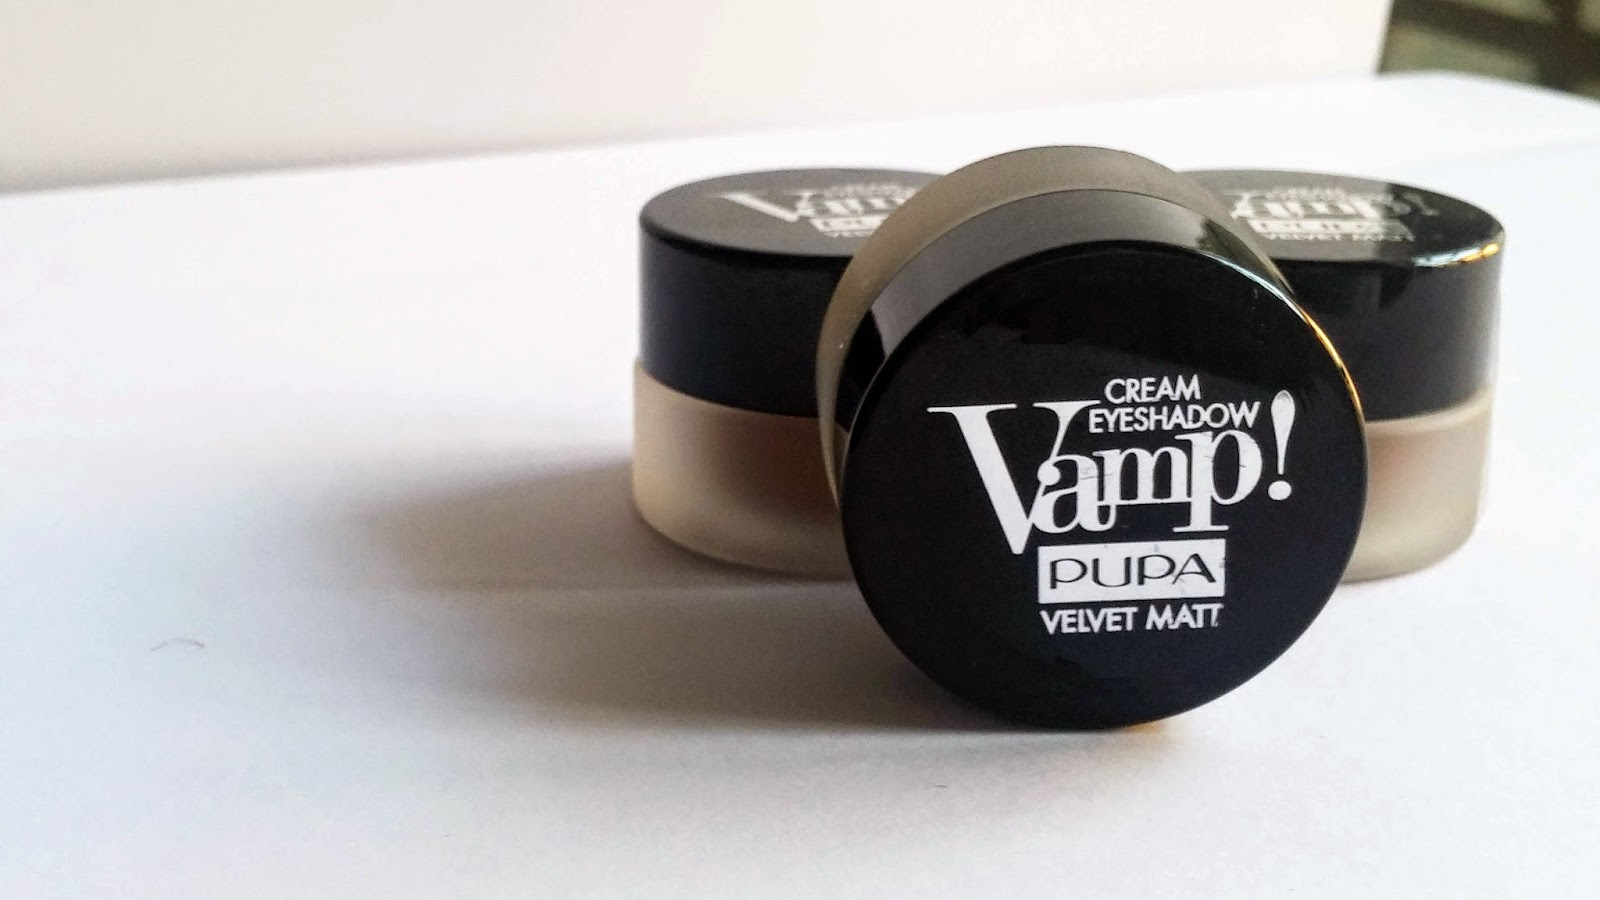 Pupa, Vamp! Cream Eyeshadow Velvet Matt swatches